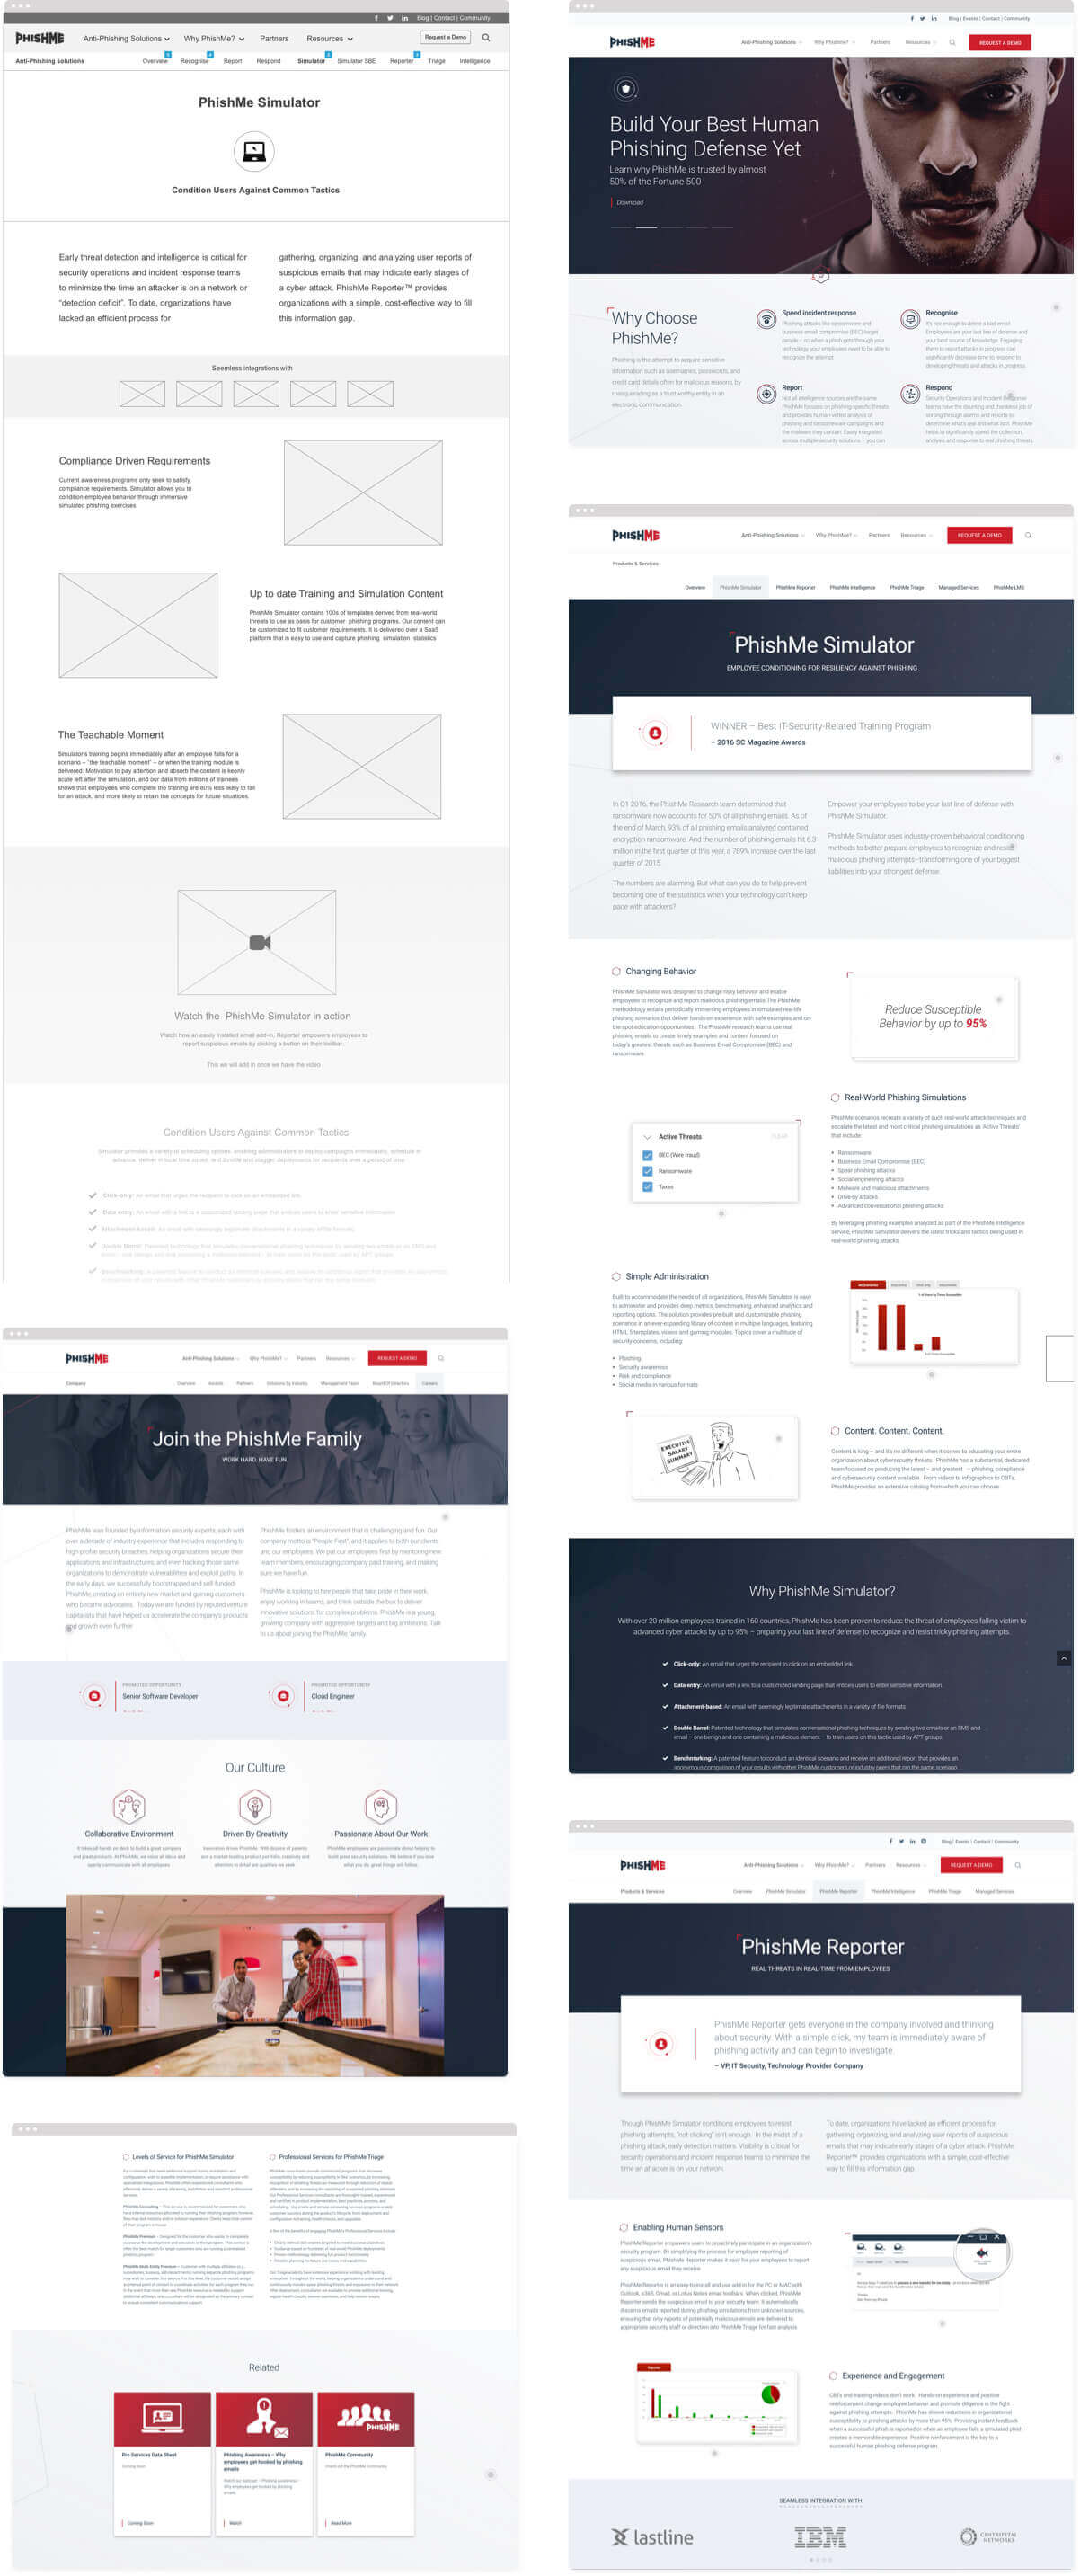 PhishMe Marketing Site Wireframe and Screen Designs